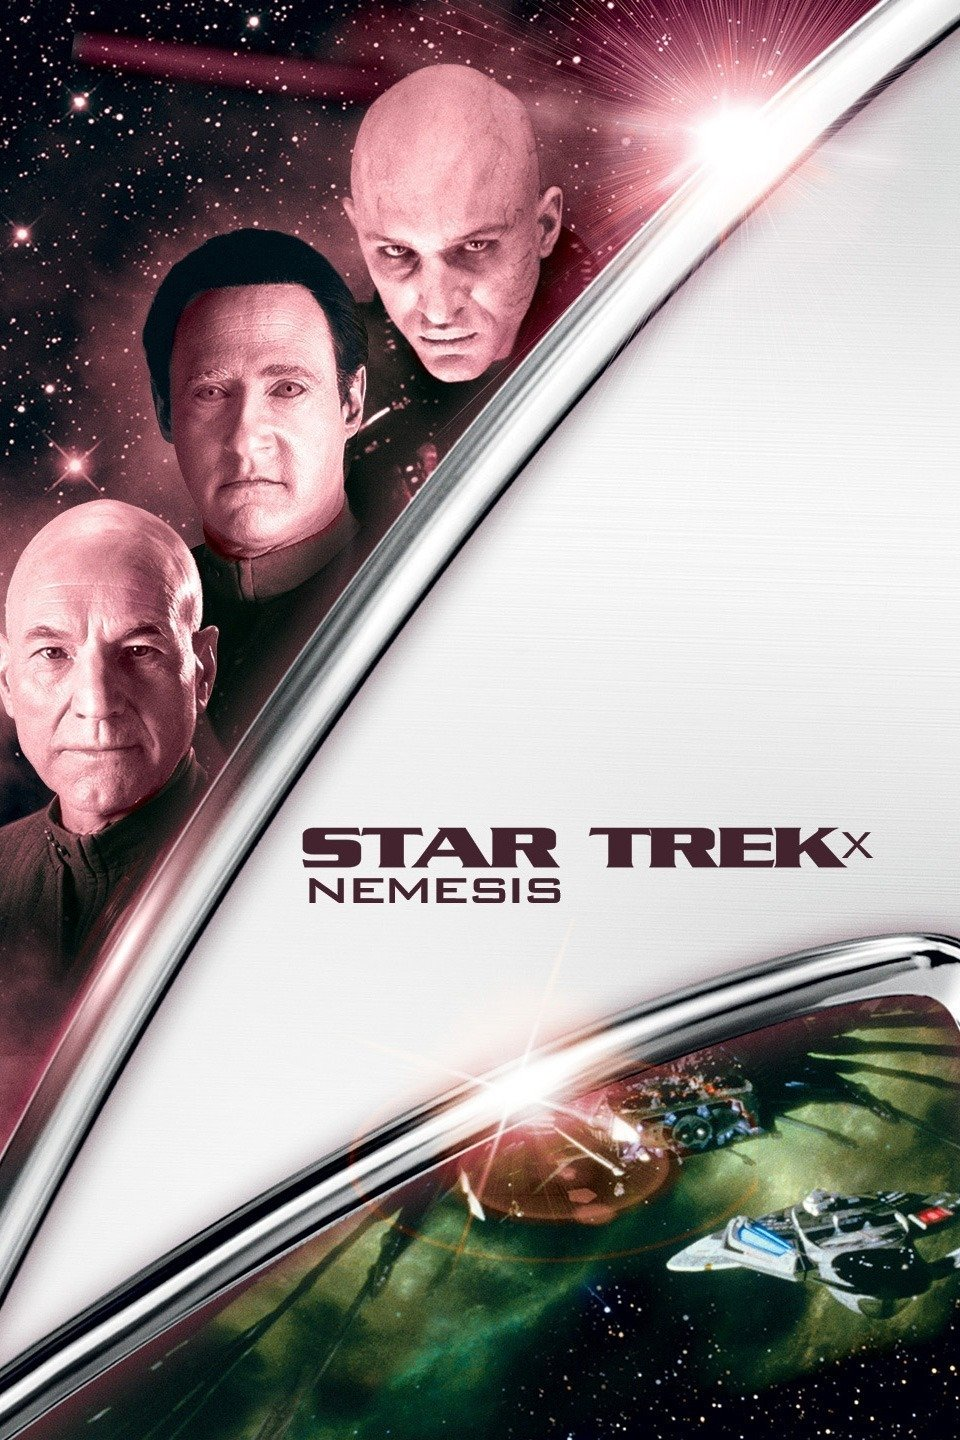 Star Trek: Nemesis-Star Trek: Nemesis